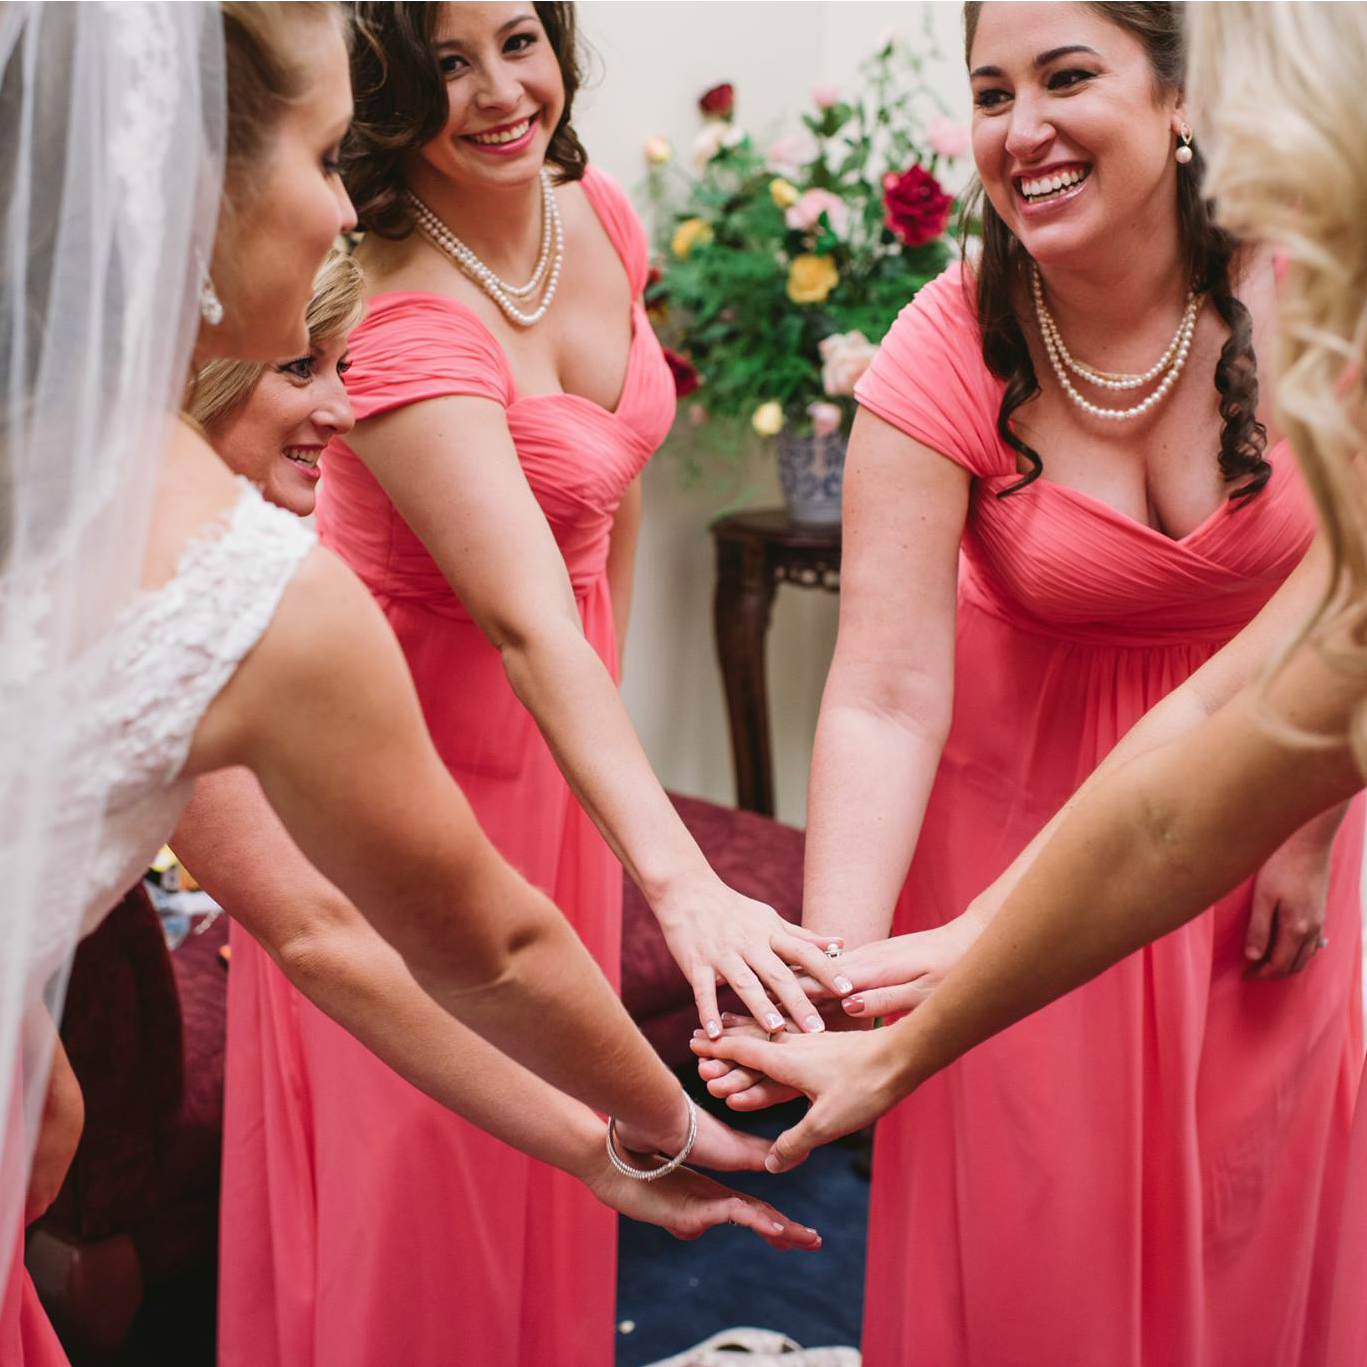 18 Reasons I Don't Want To Be Your Bridesmaid